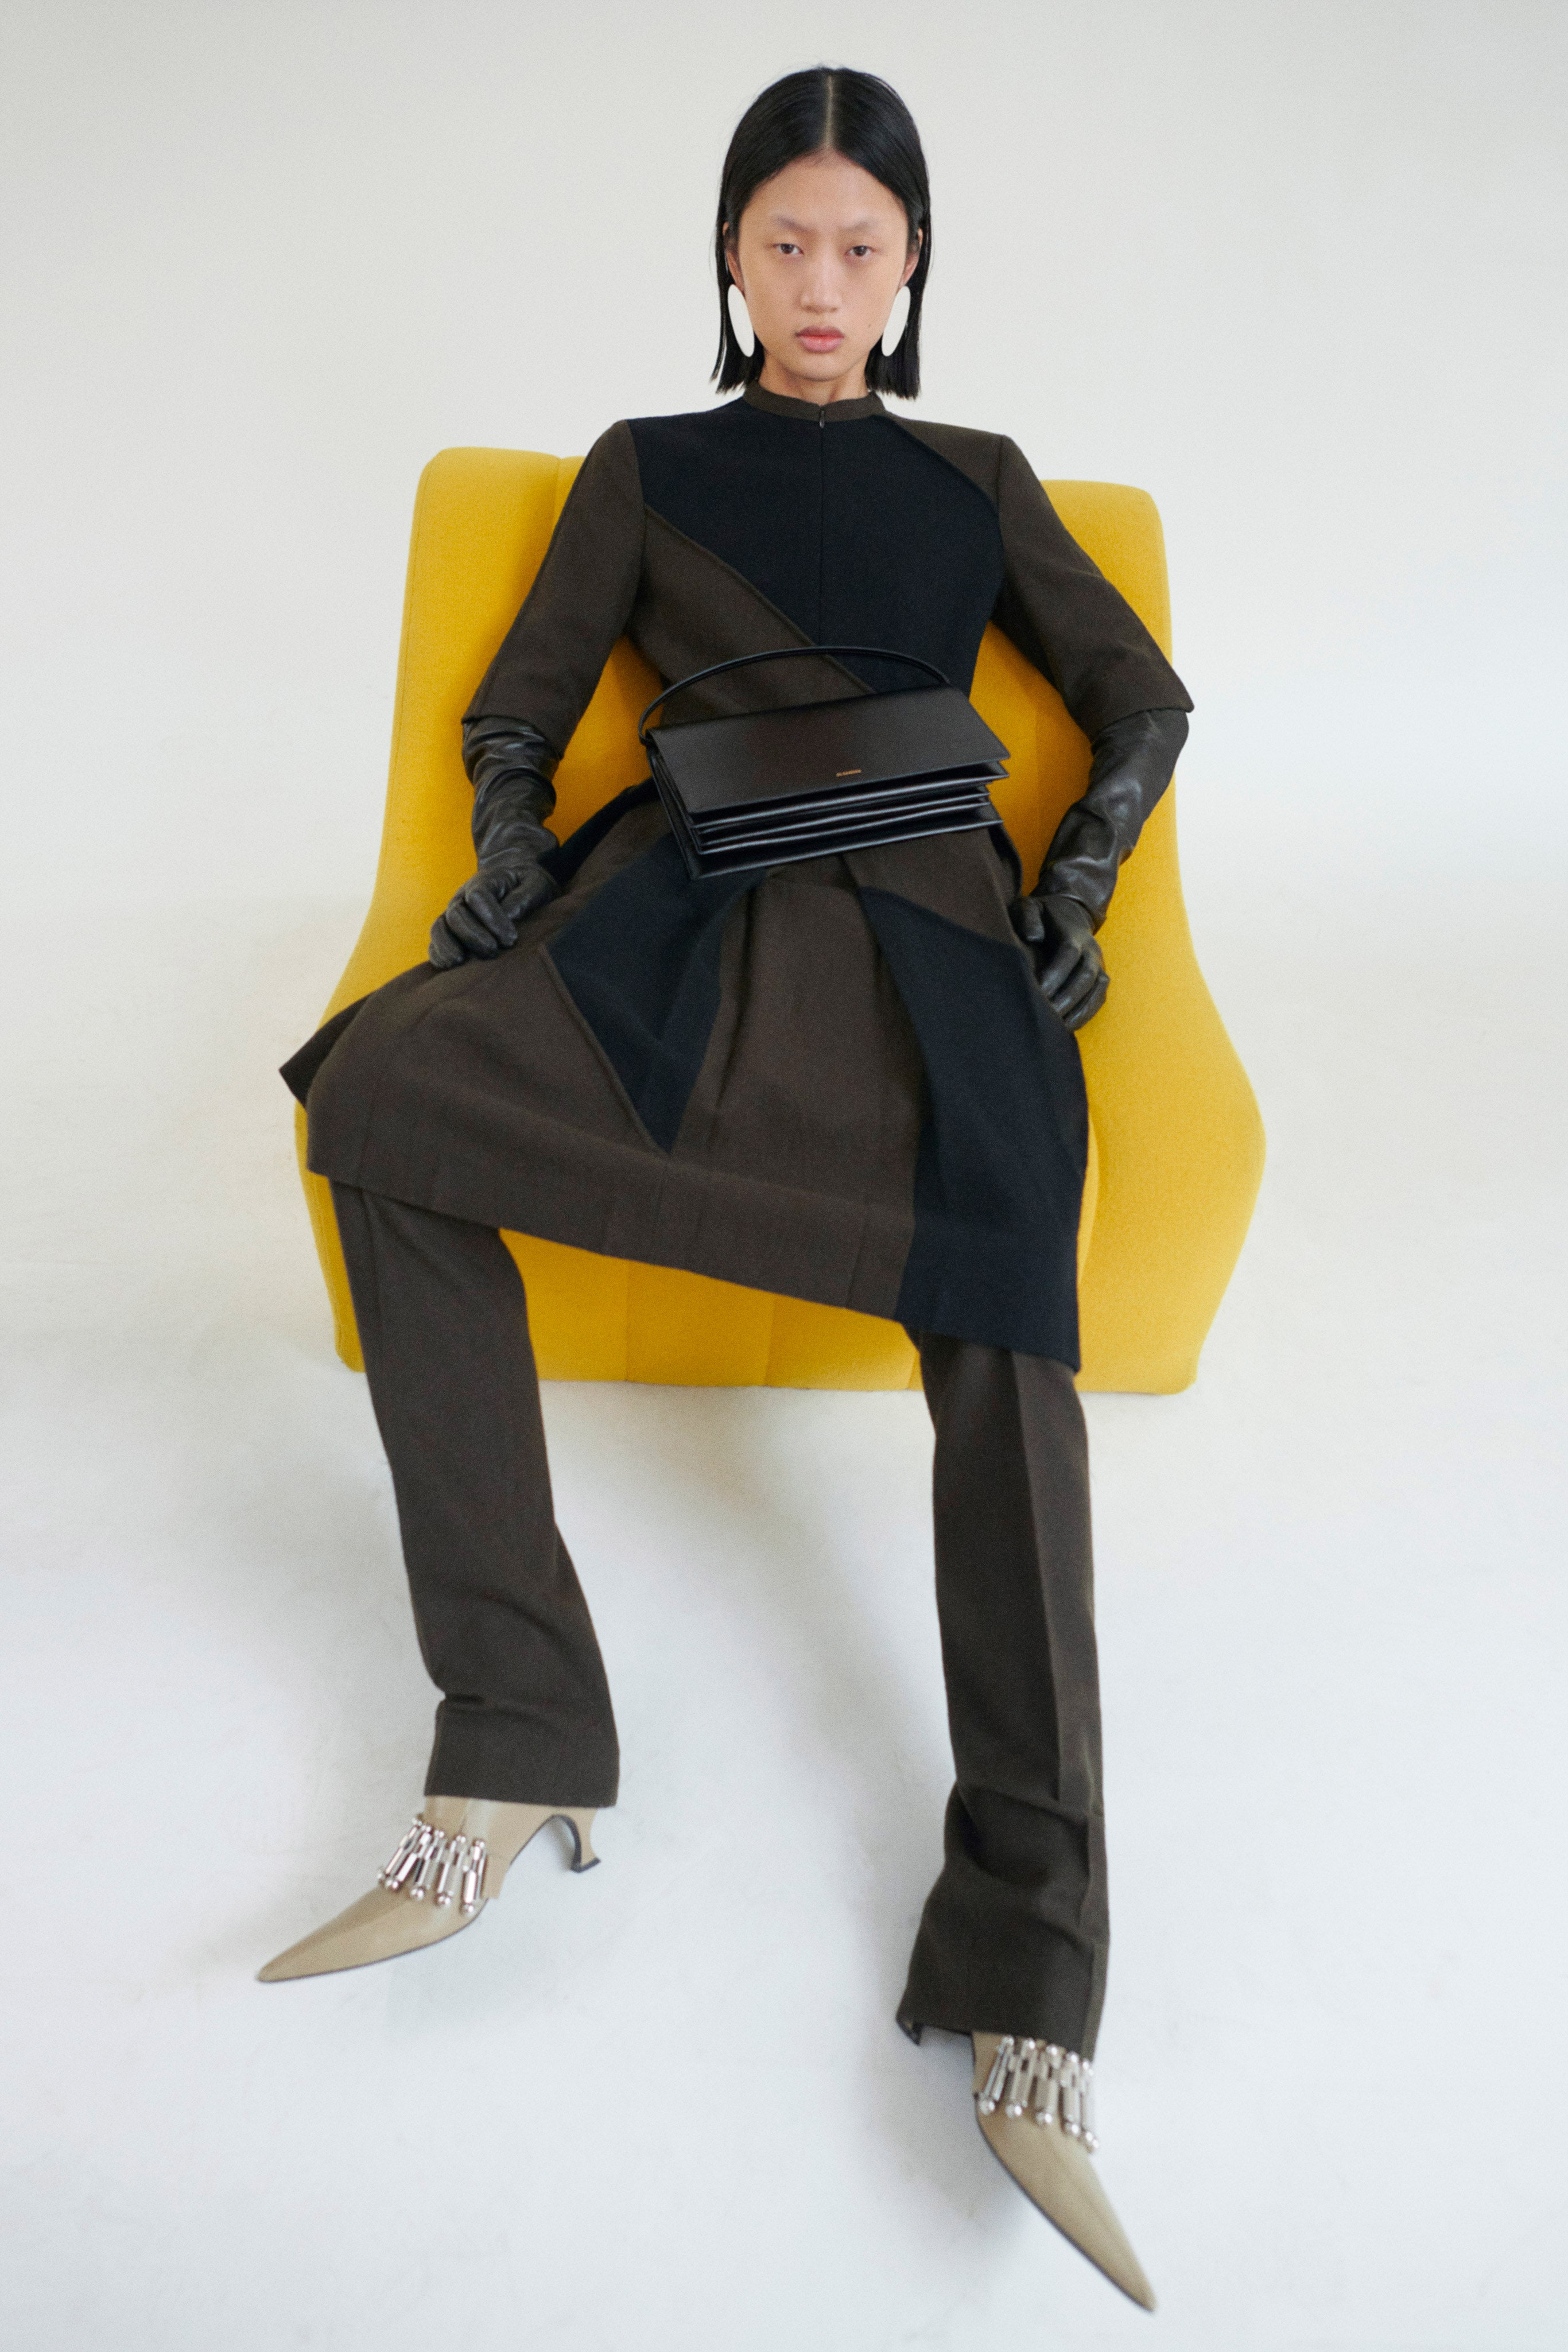 For walks in the fresh air: A seasonal collection of Jil Sander arrived at Asthik (photo 41)